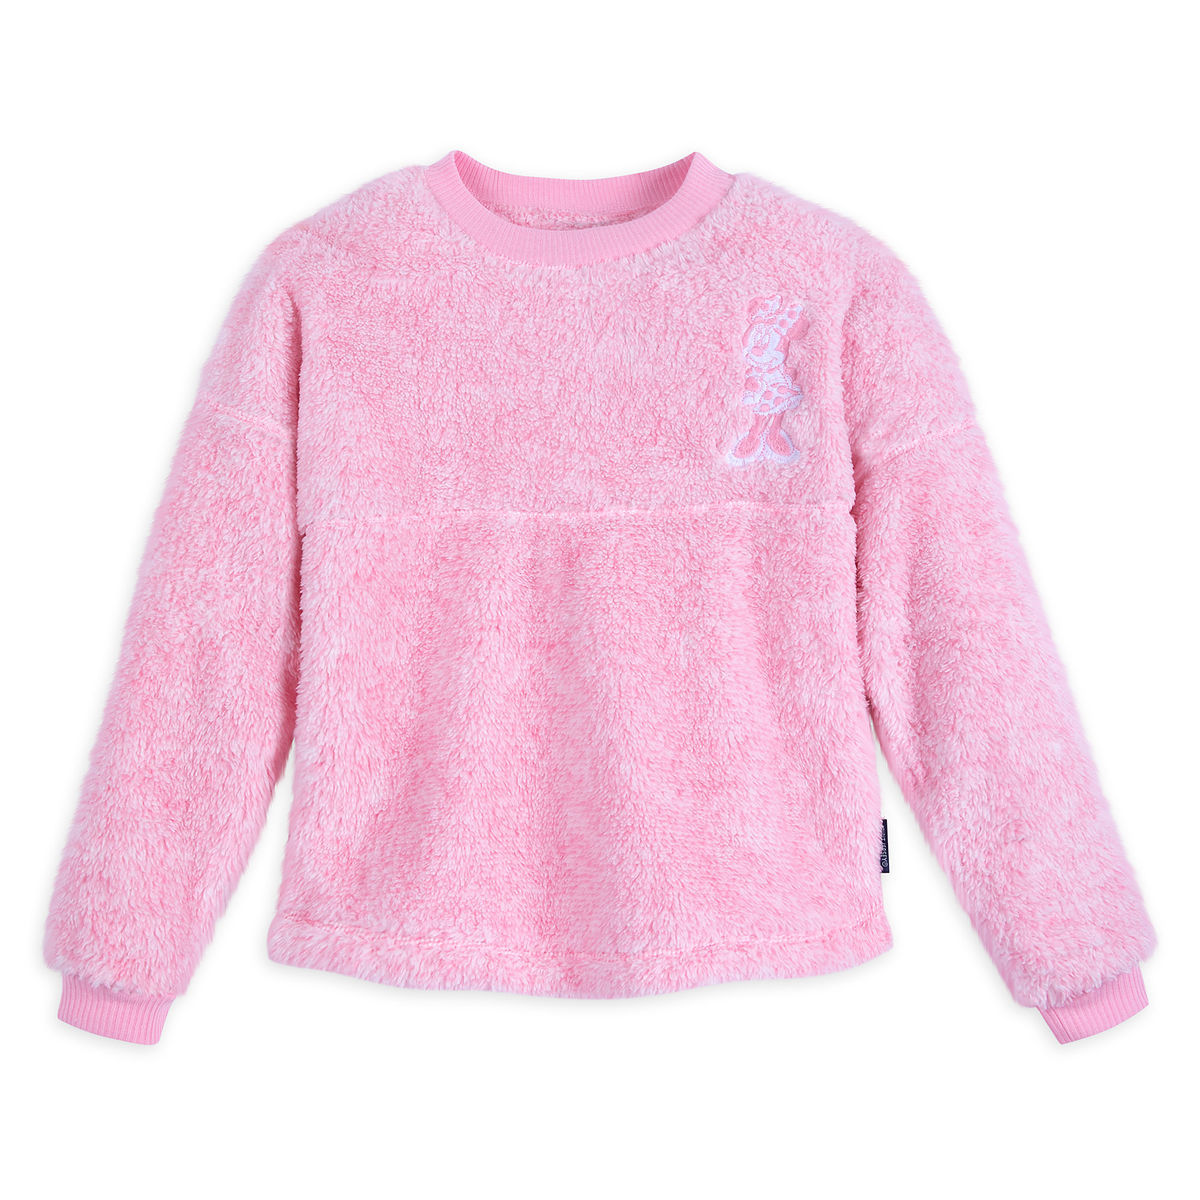 Disney Spirit Jersey for Girls - Minnie Mouse Fuzzy - Pink